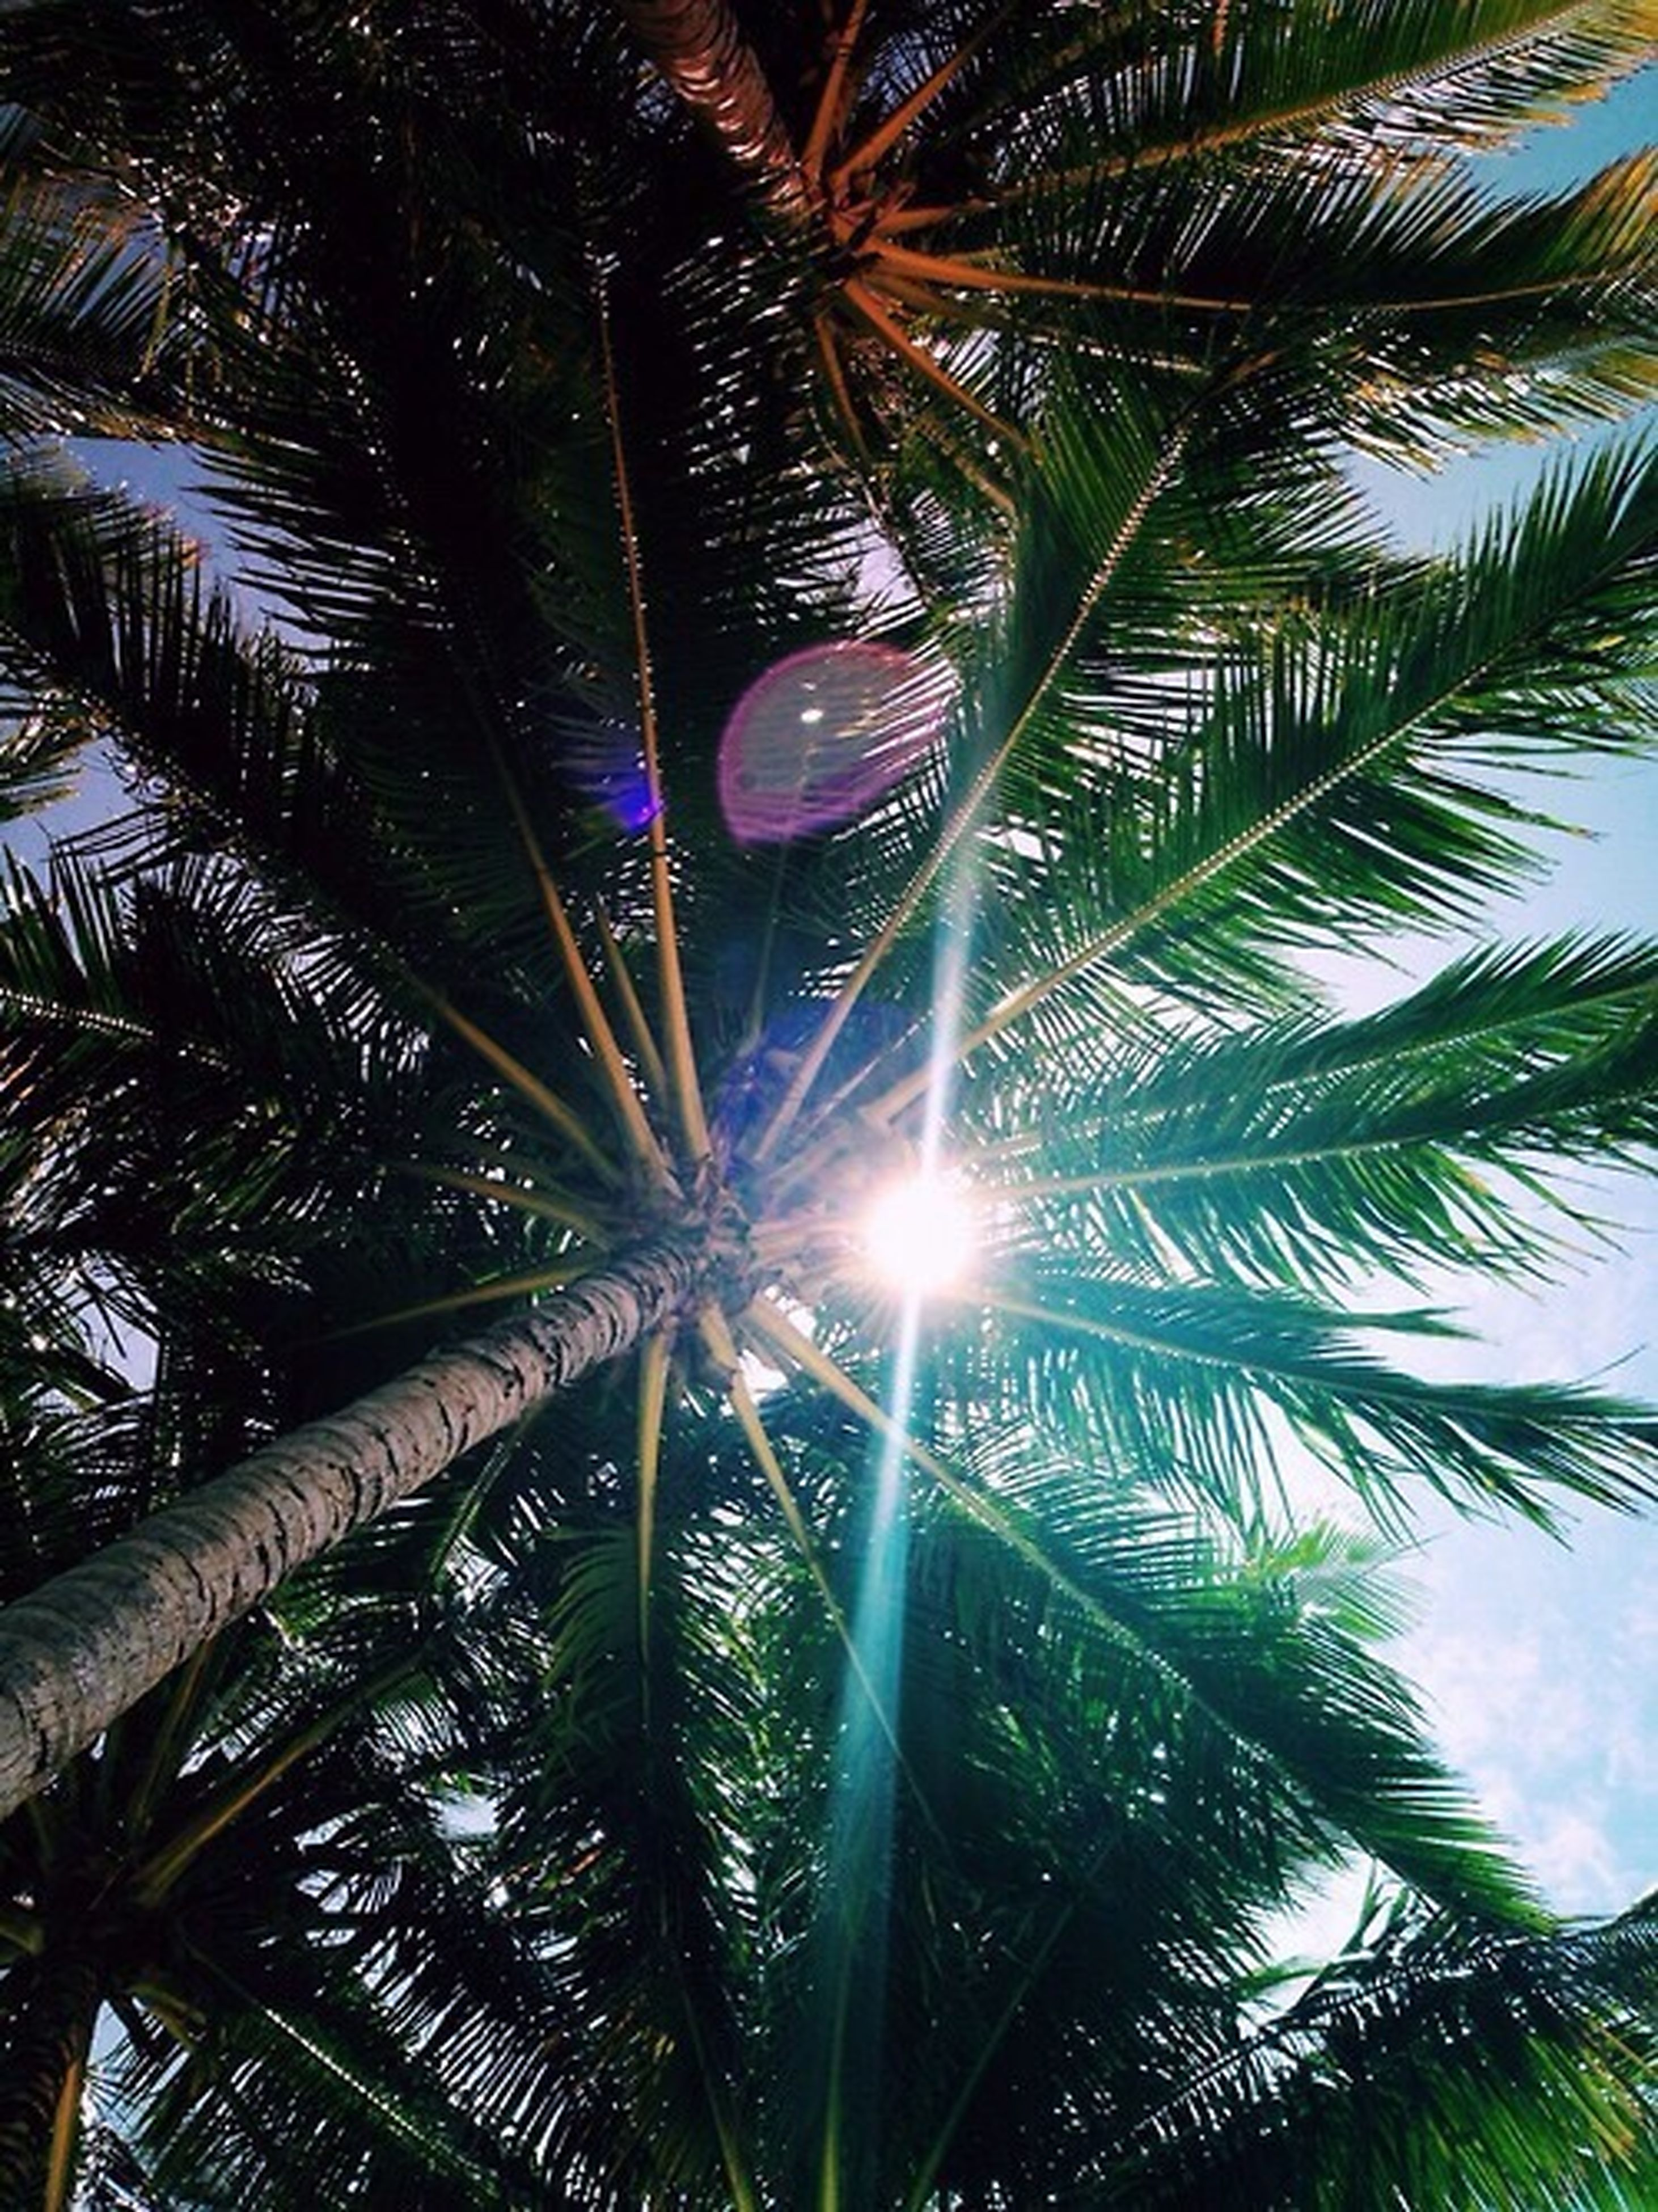 palm tree, tree trunk, low angle view, sunbeam, sun, growth, tree, scenics, sunlight, tranquility, beauty in nature, tall - high, nature, tranquil scene, branch, sky, green color, outdoors, majestic, day, tall, directly below, bright, lens flare, coconut palm tree, lush foliage, blue, back lit, tree canopy, frond, non-urban scene